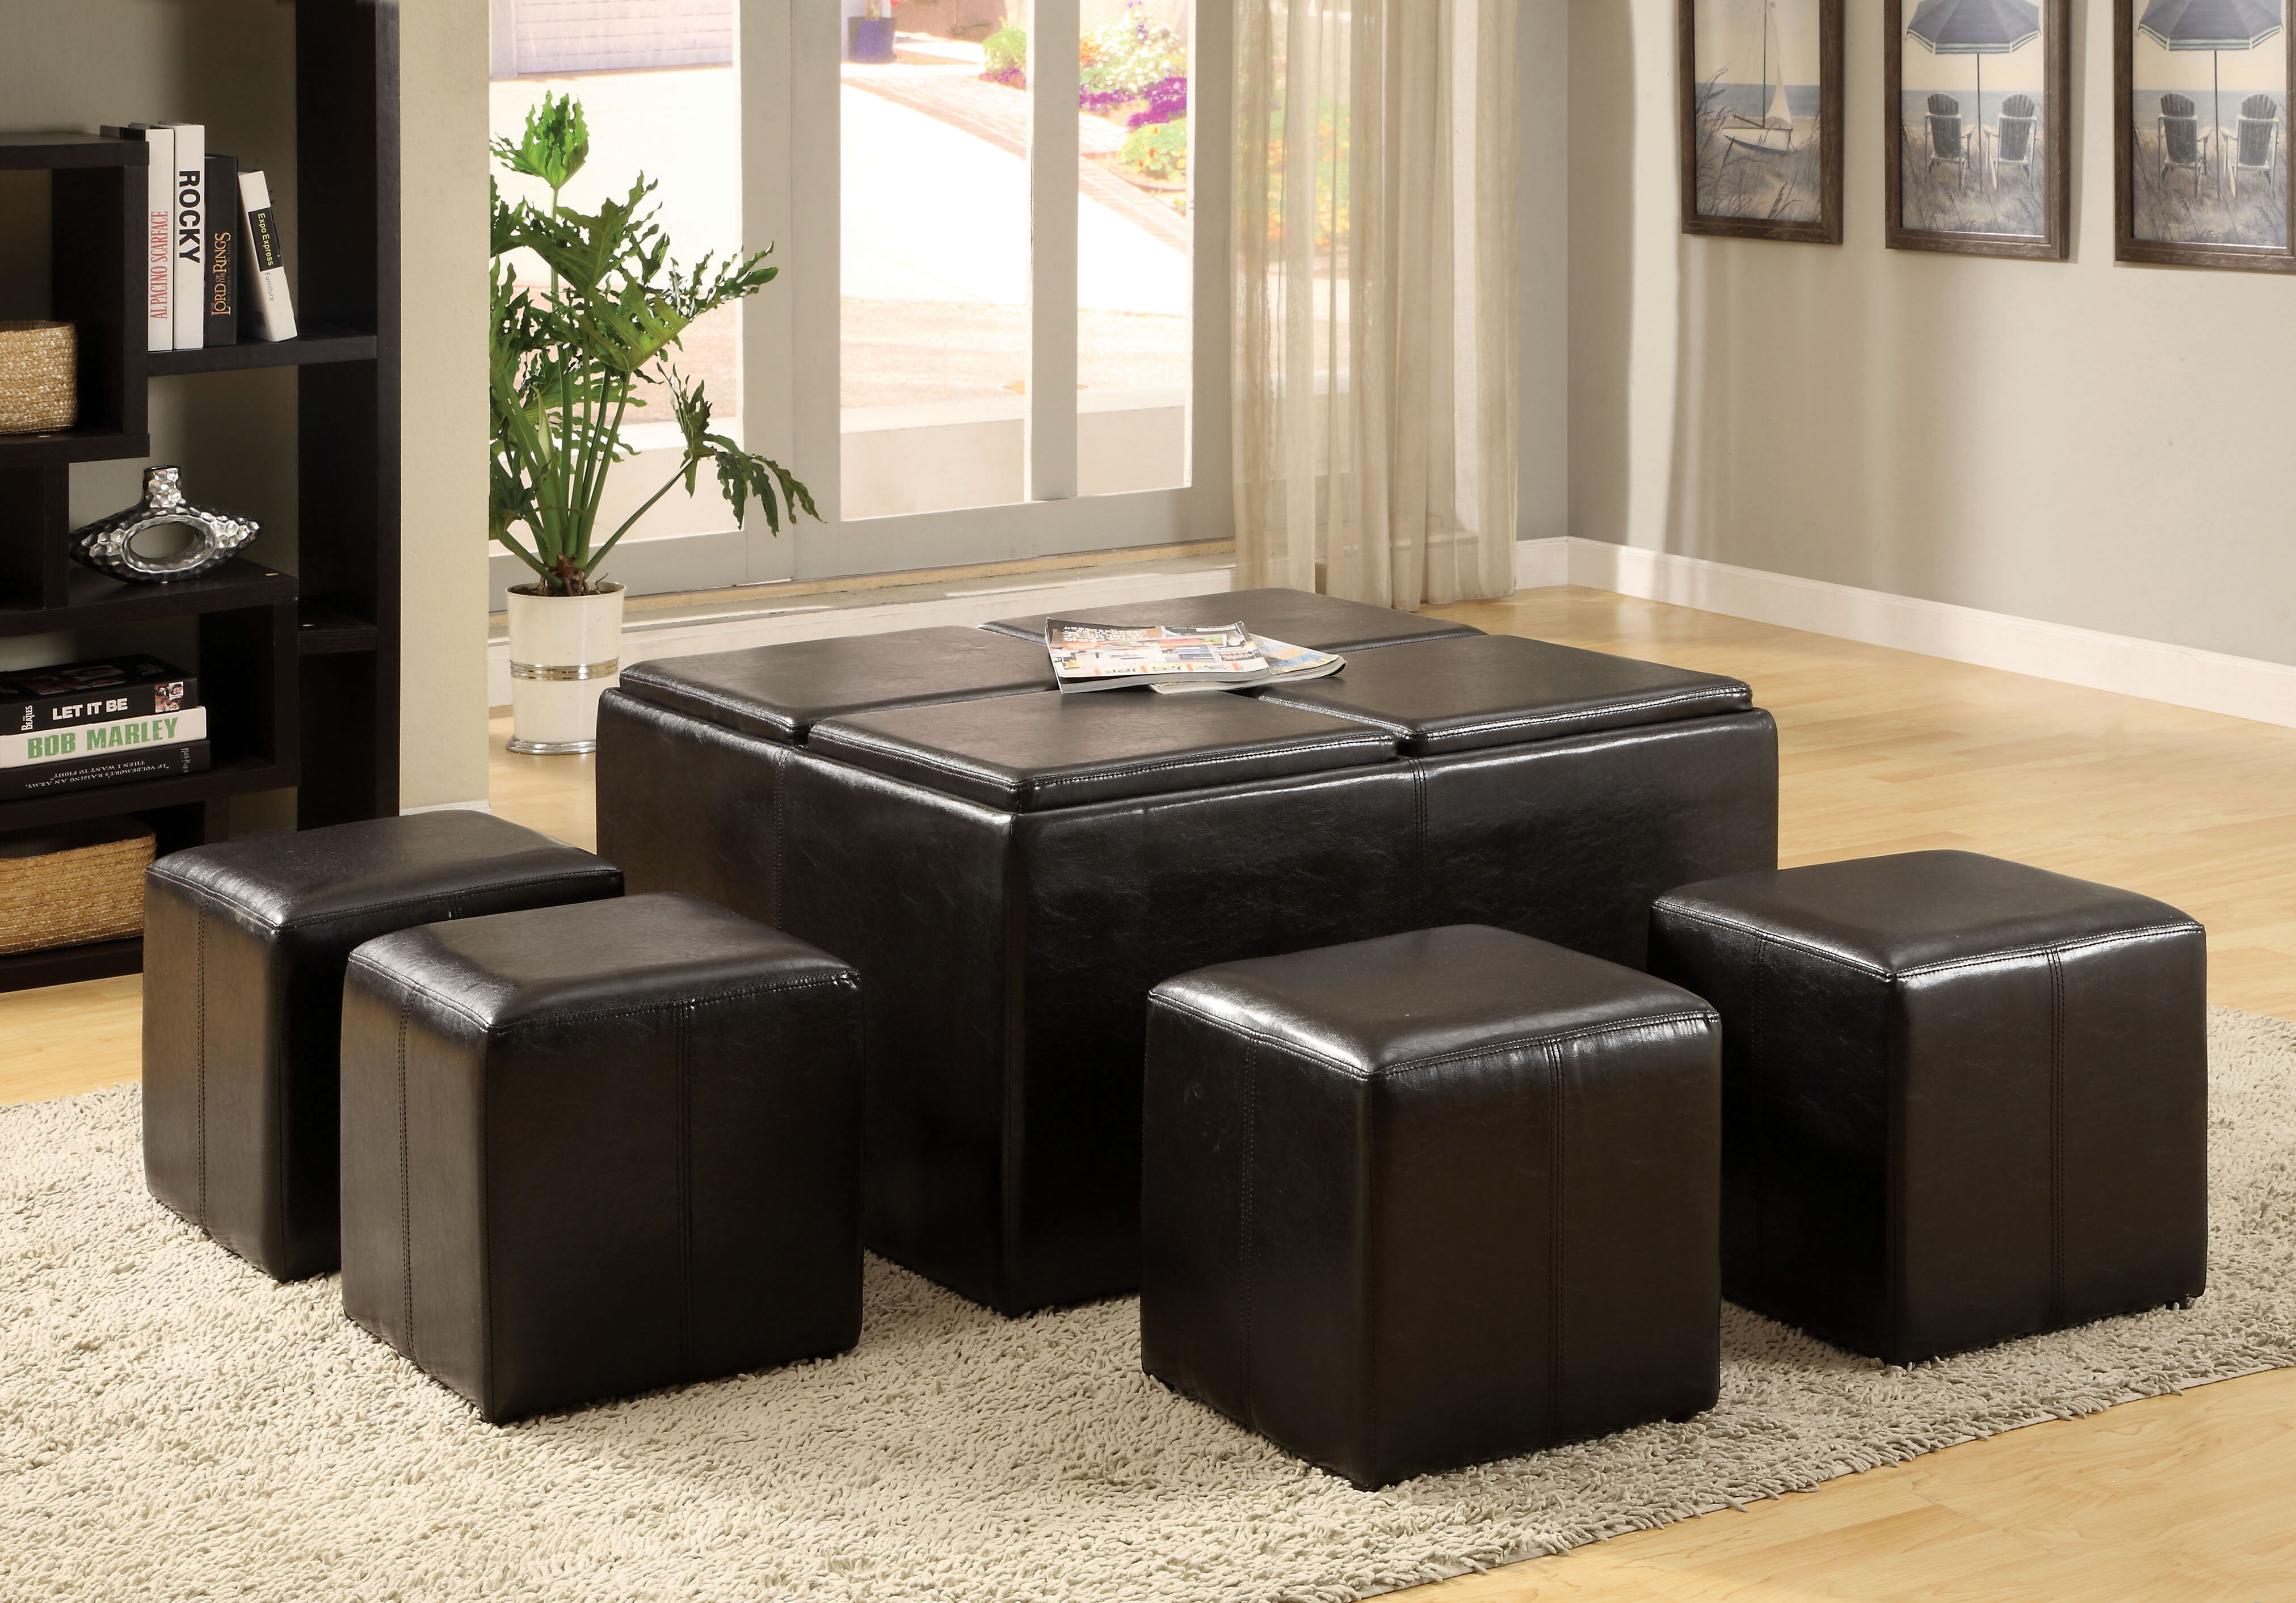 Darby Home Co Turner 5 Piece Coffee Table Ottoman Set & Reviews